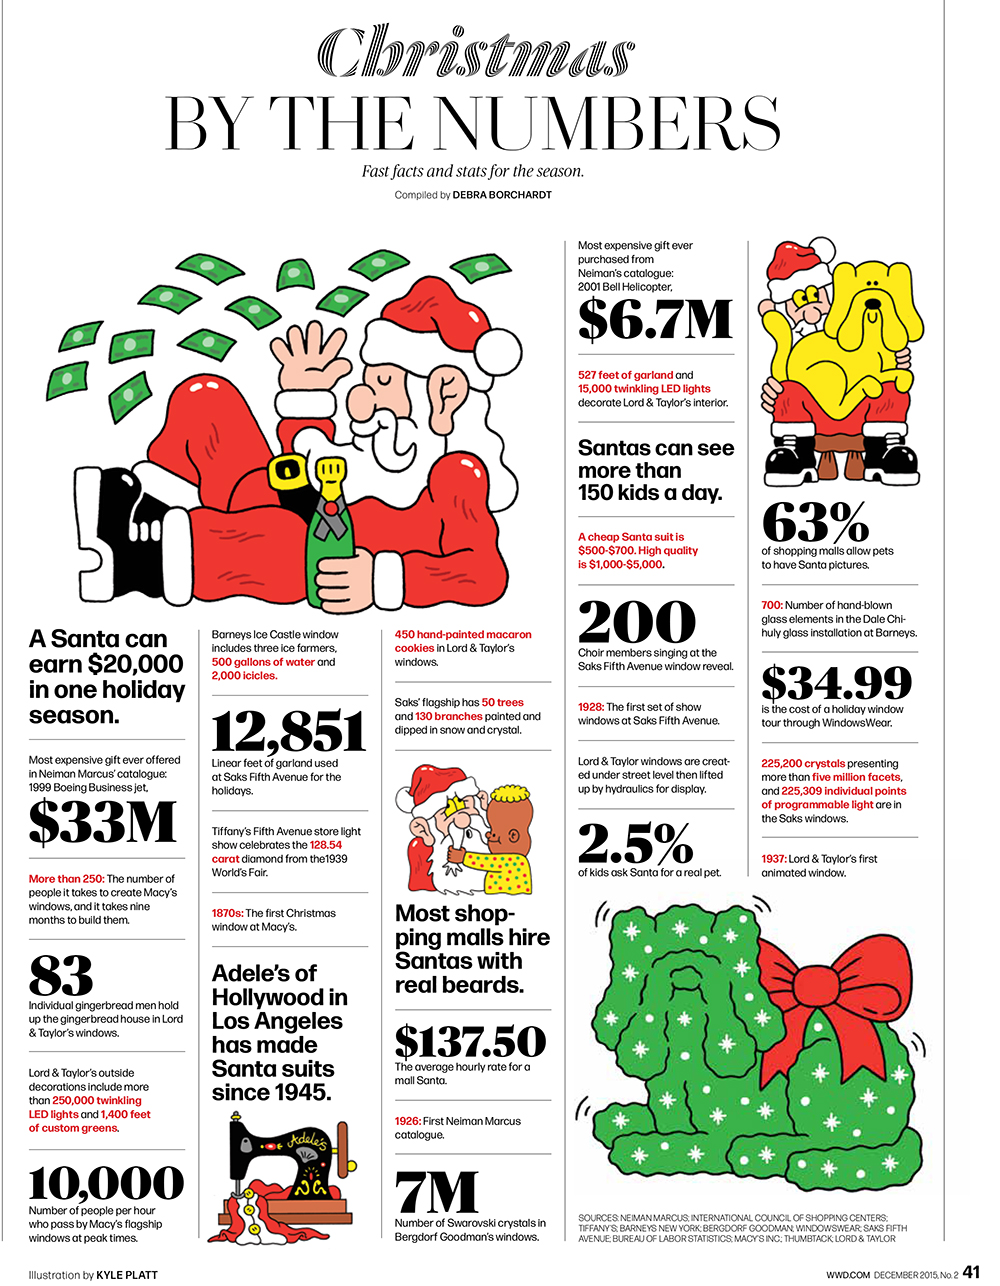 BY THE NUMBERS CHRISTMAS.jpg